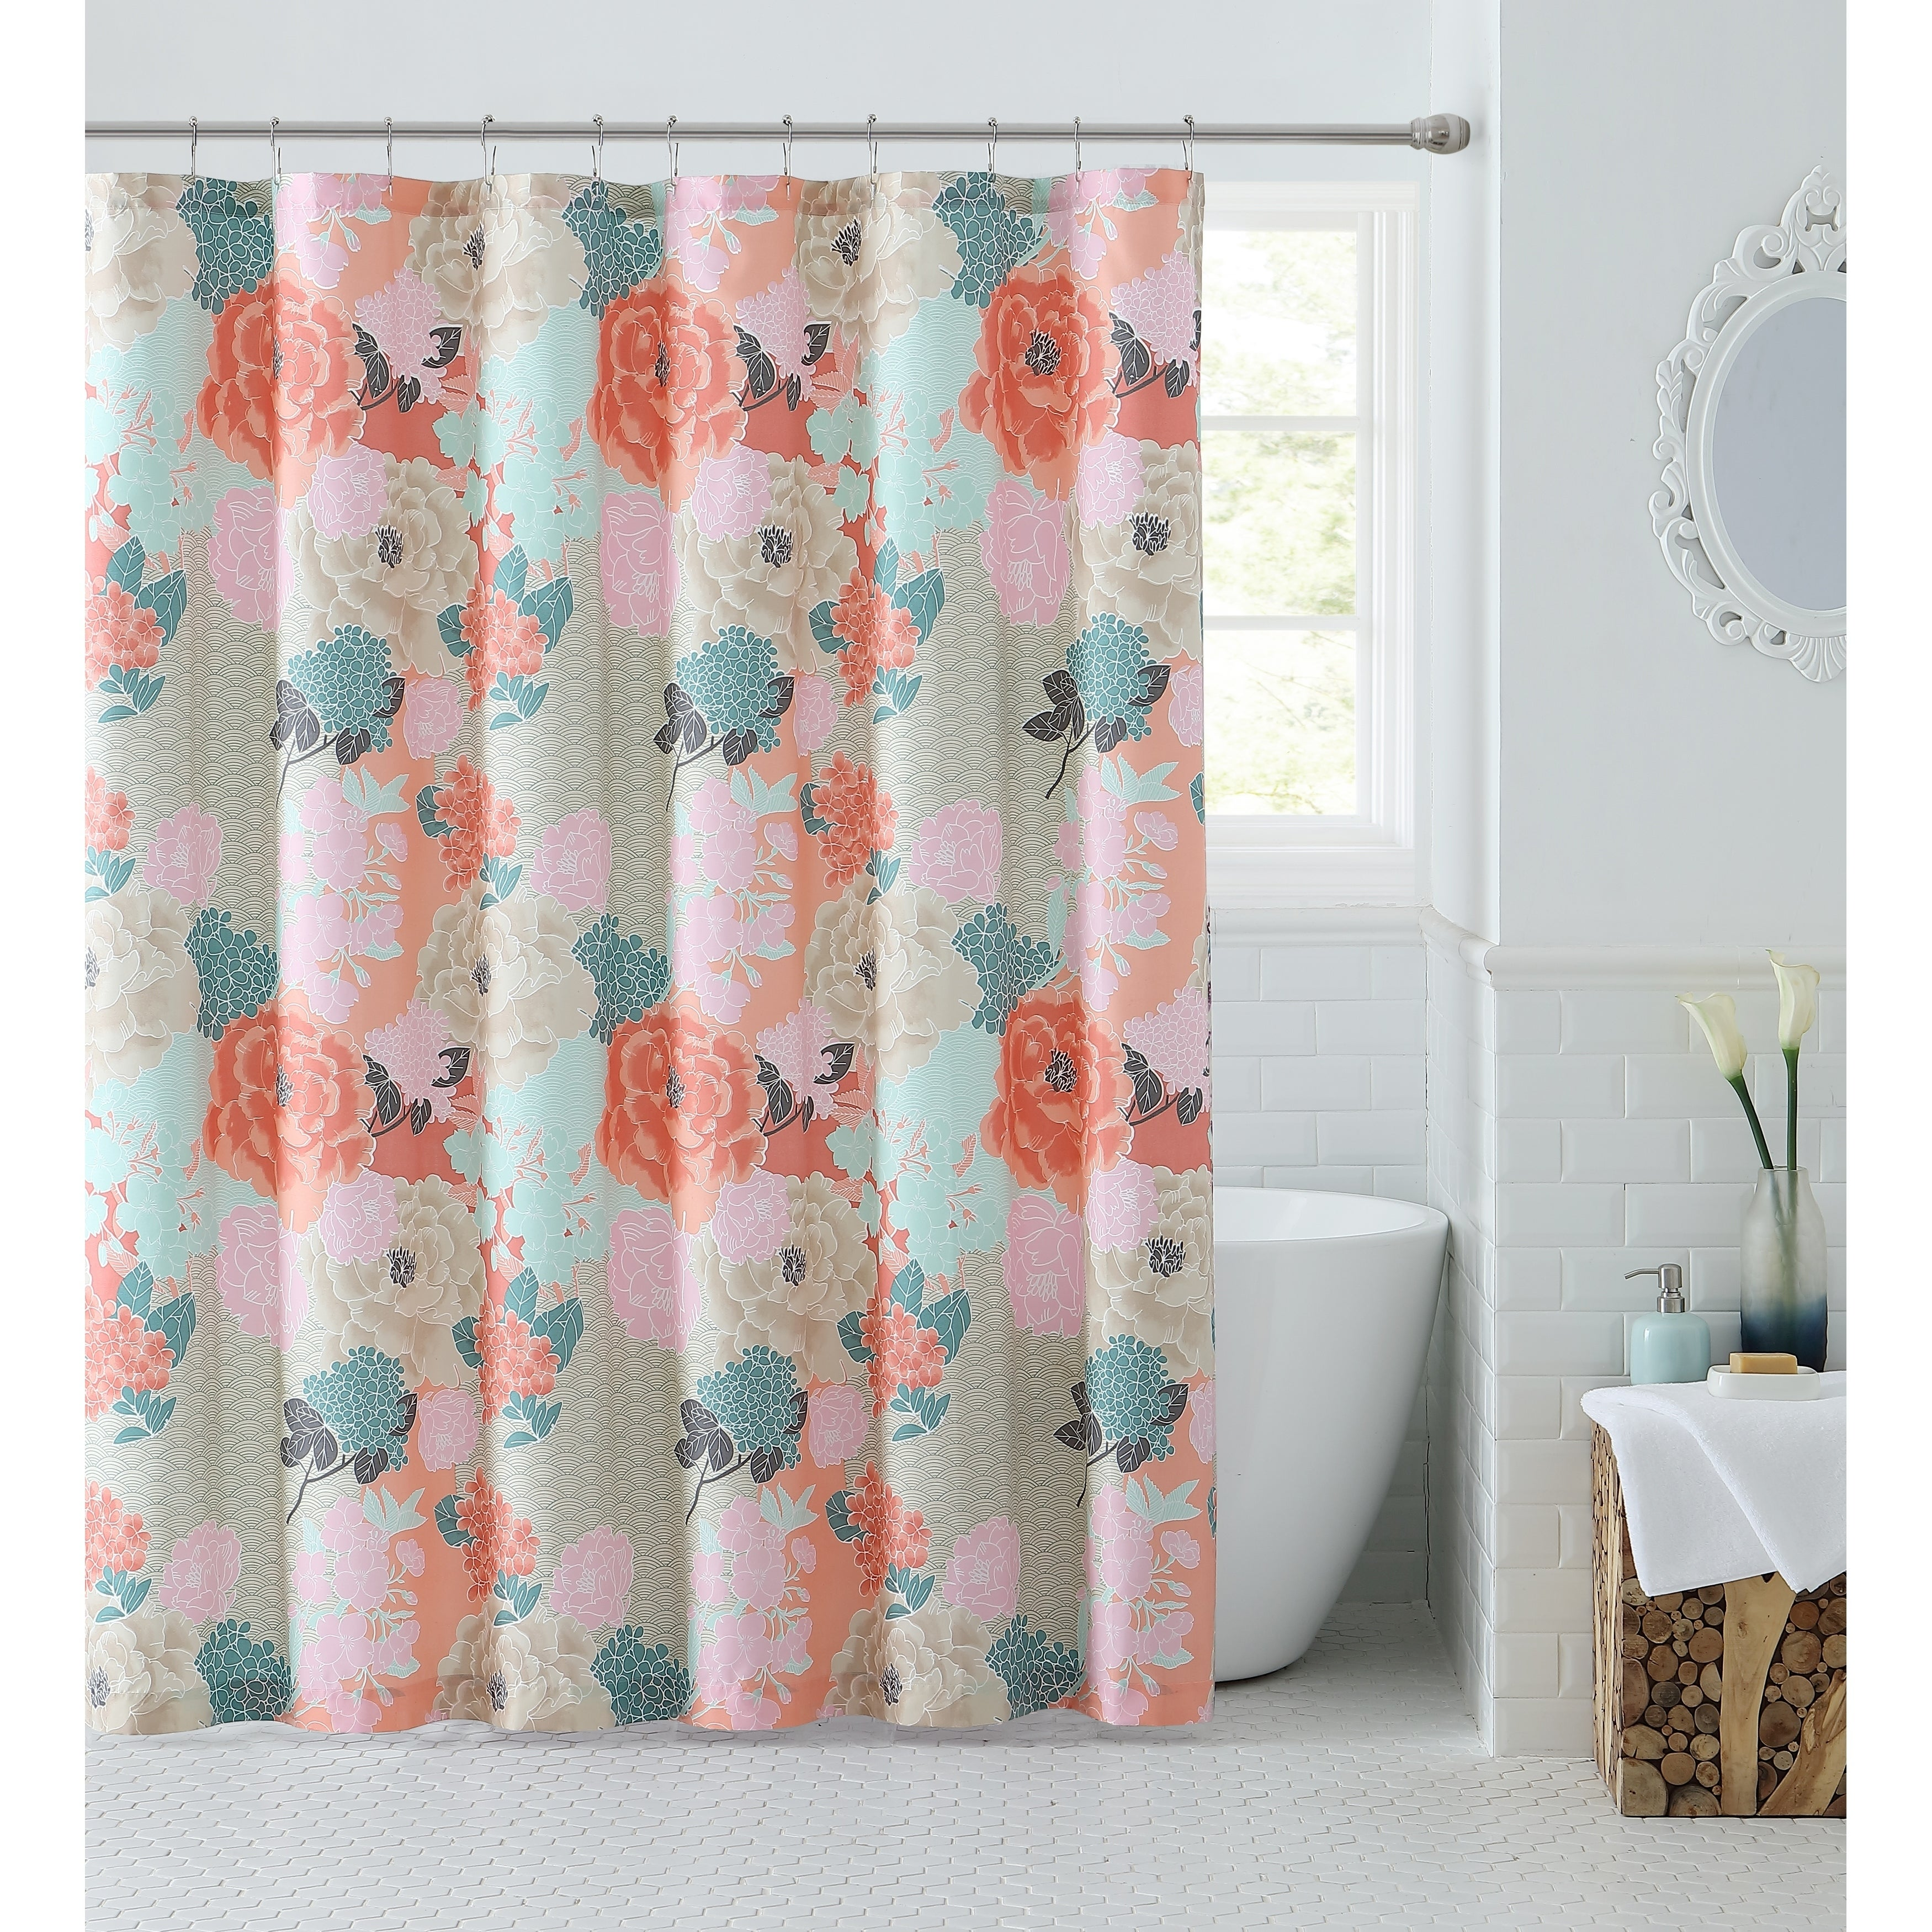 Shop Black Friday Deals On Vcny Home Jodi Floral Shower Curtain Multi Overstock 22670697